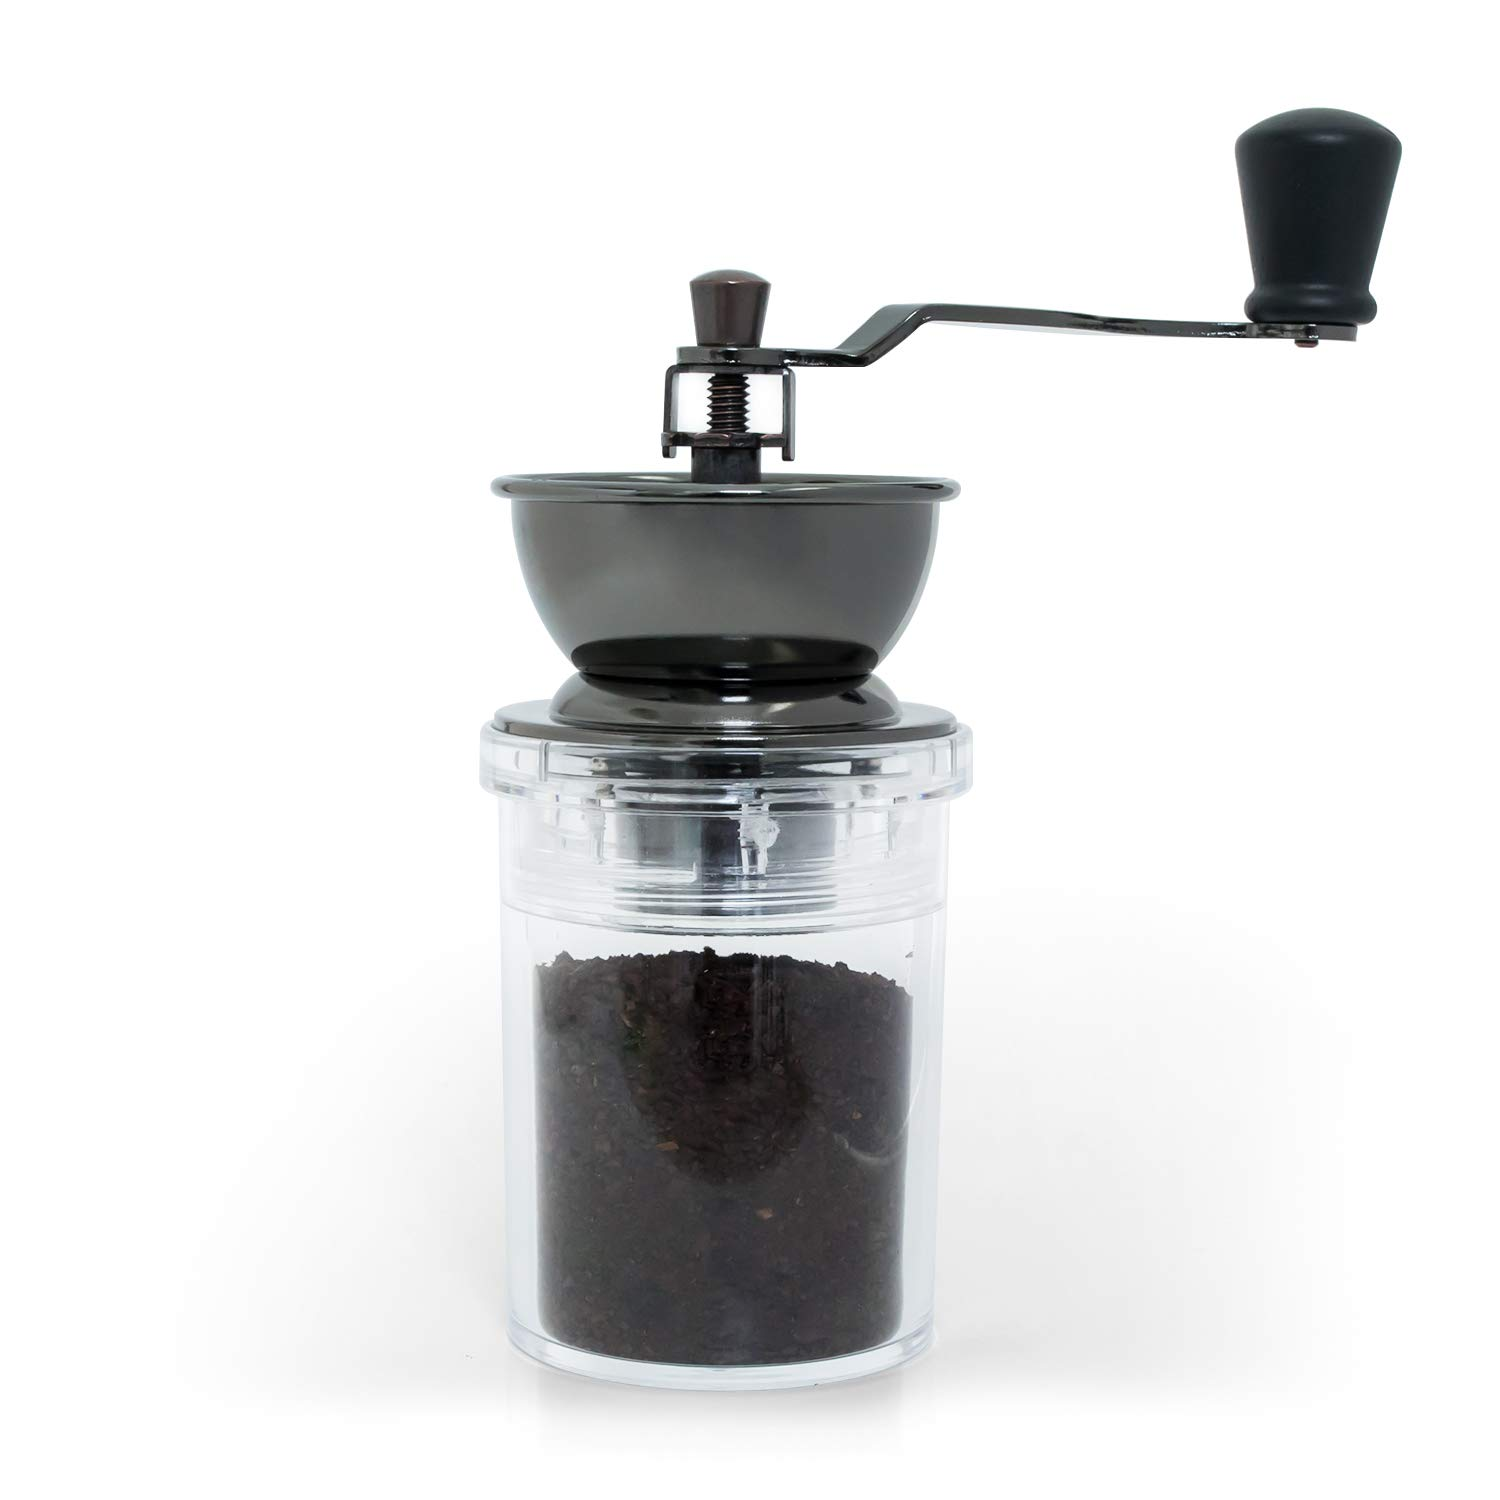 Verre Collection Ceramic Conical Burr Coffee Mill Manual Grinder, Brushed Black Copper